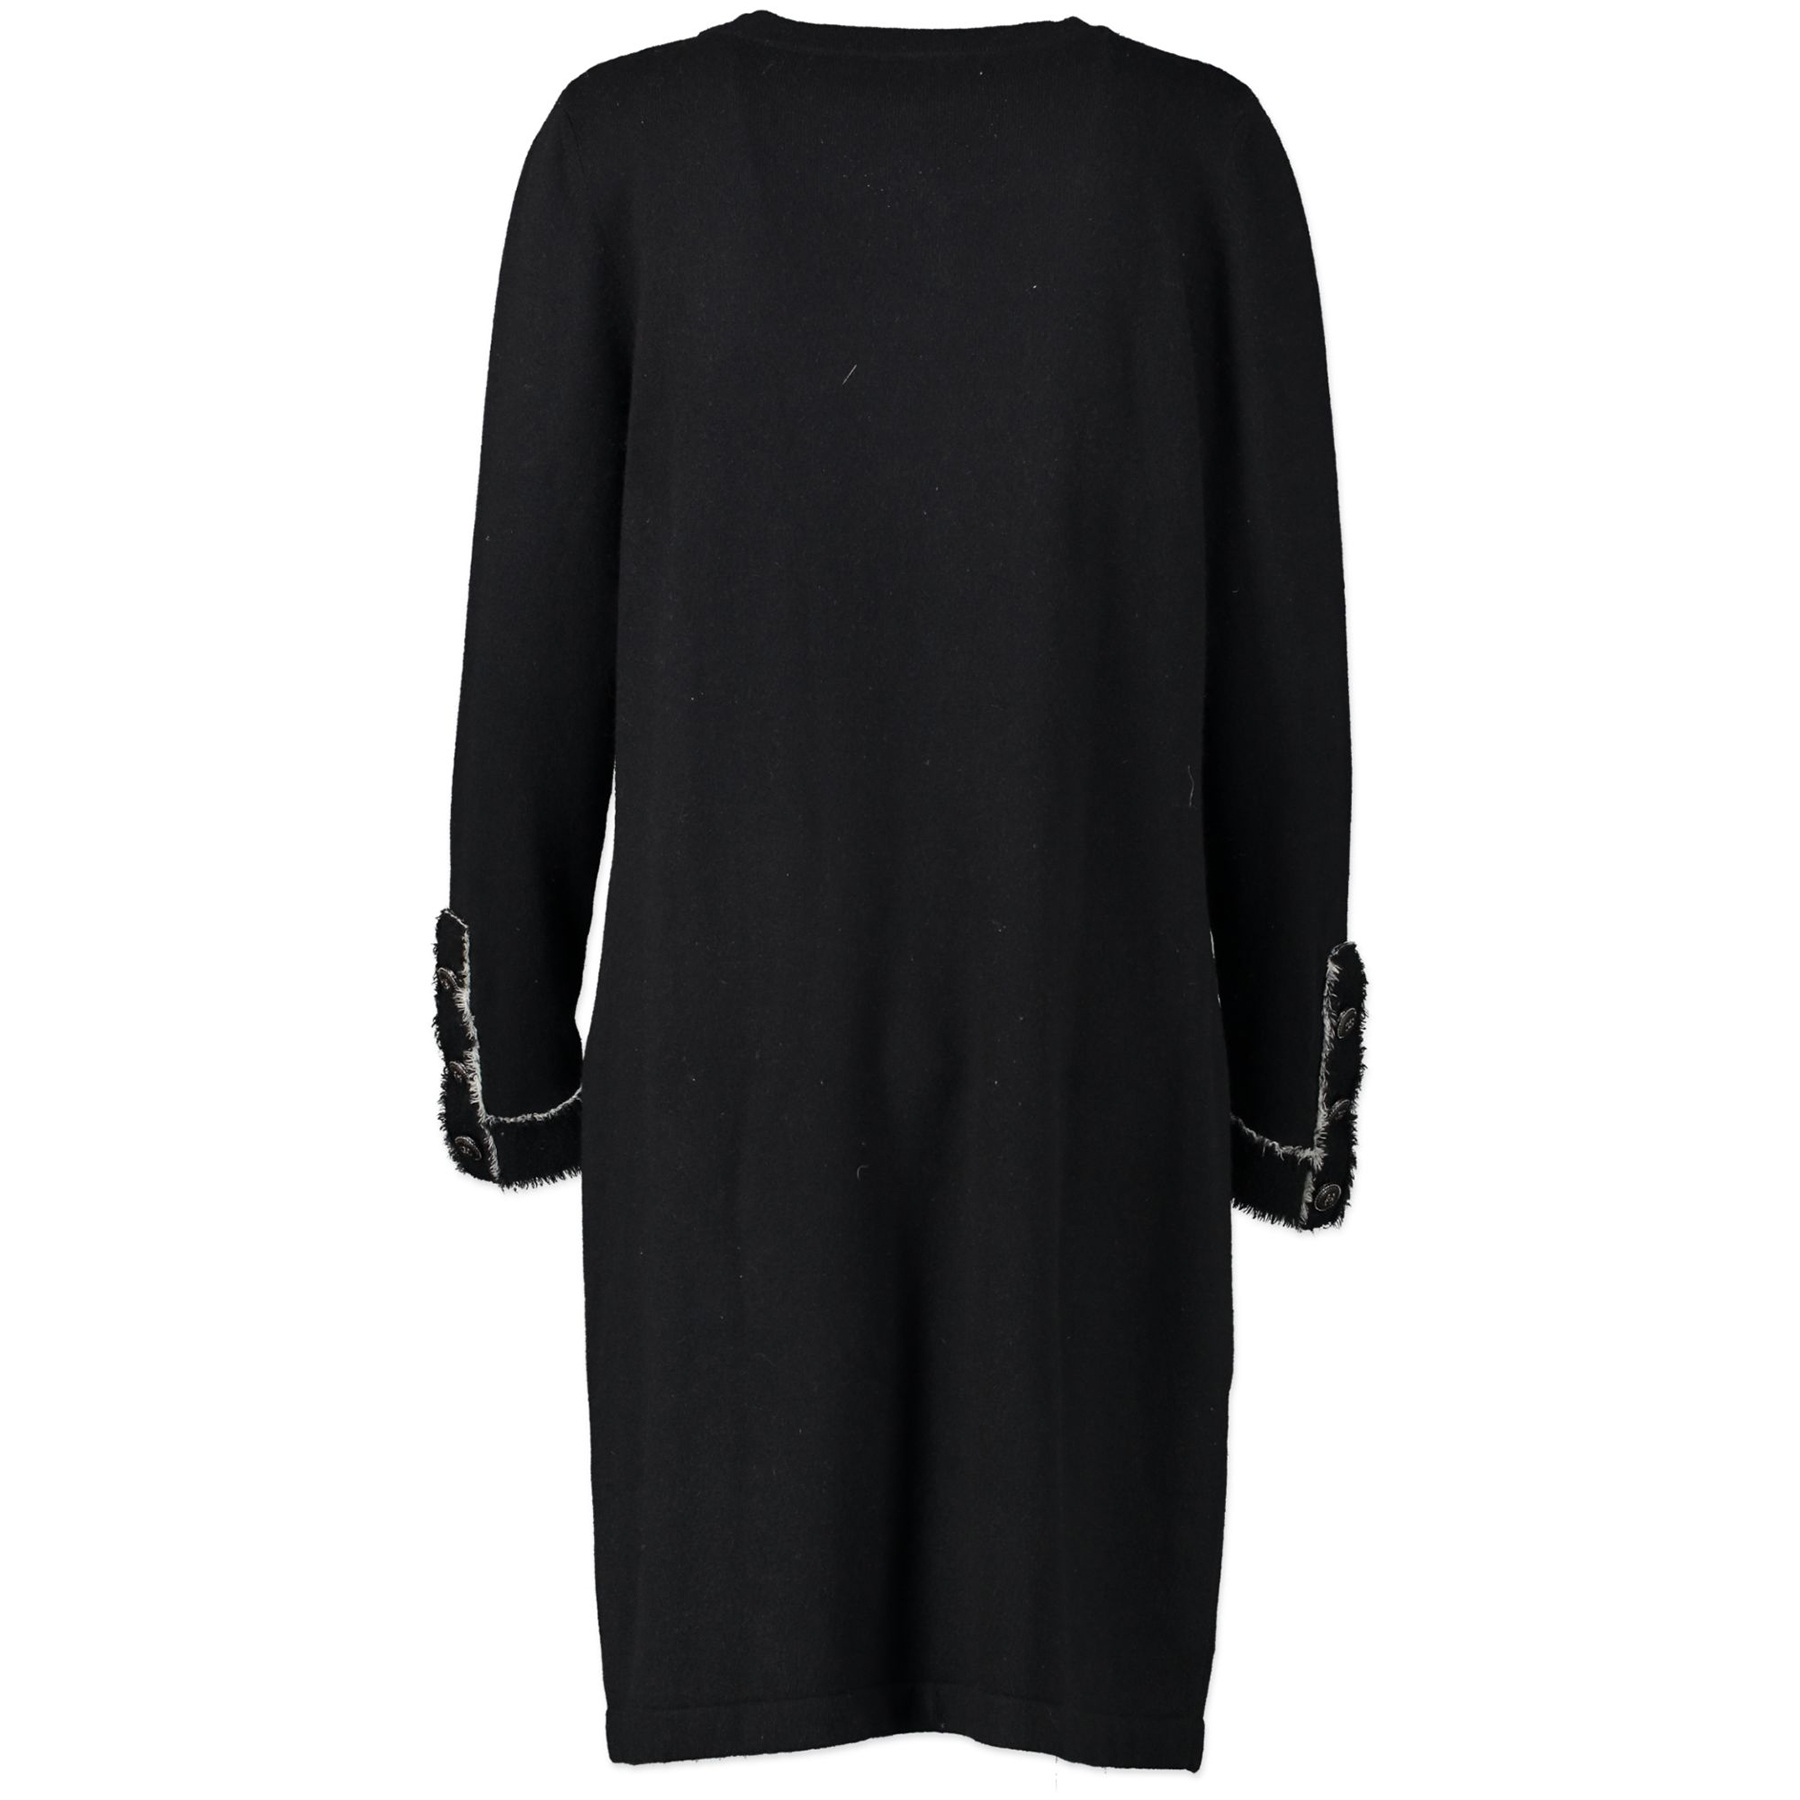 Chanel Black Cashmere Henley Sweater Dress - FR40